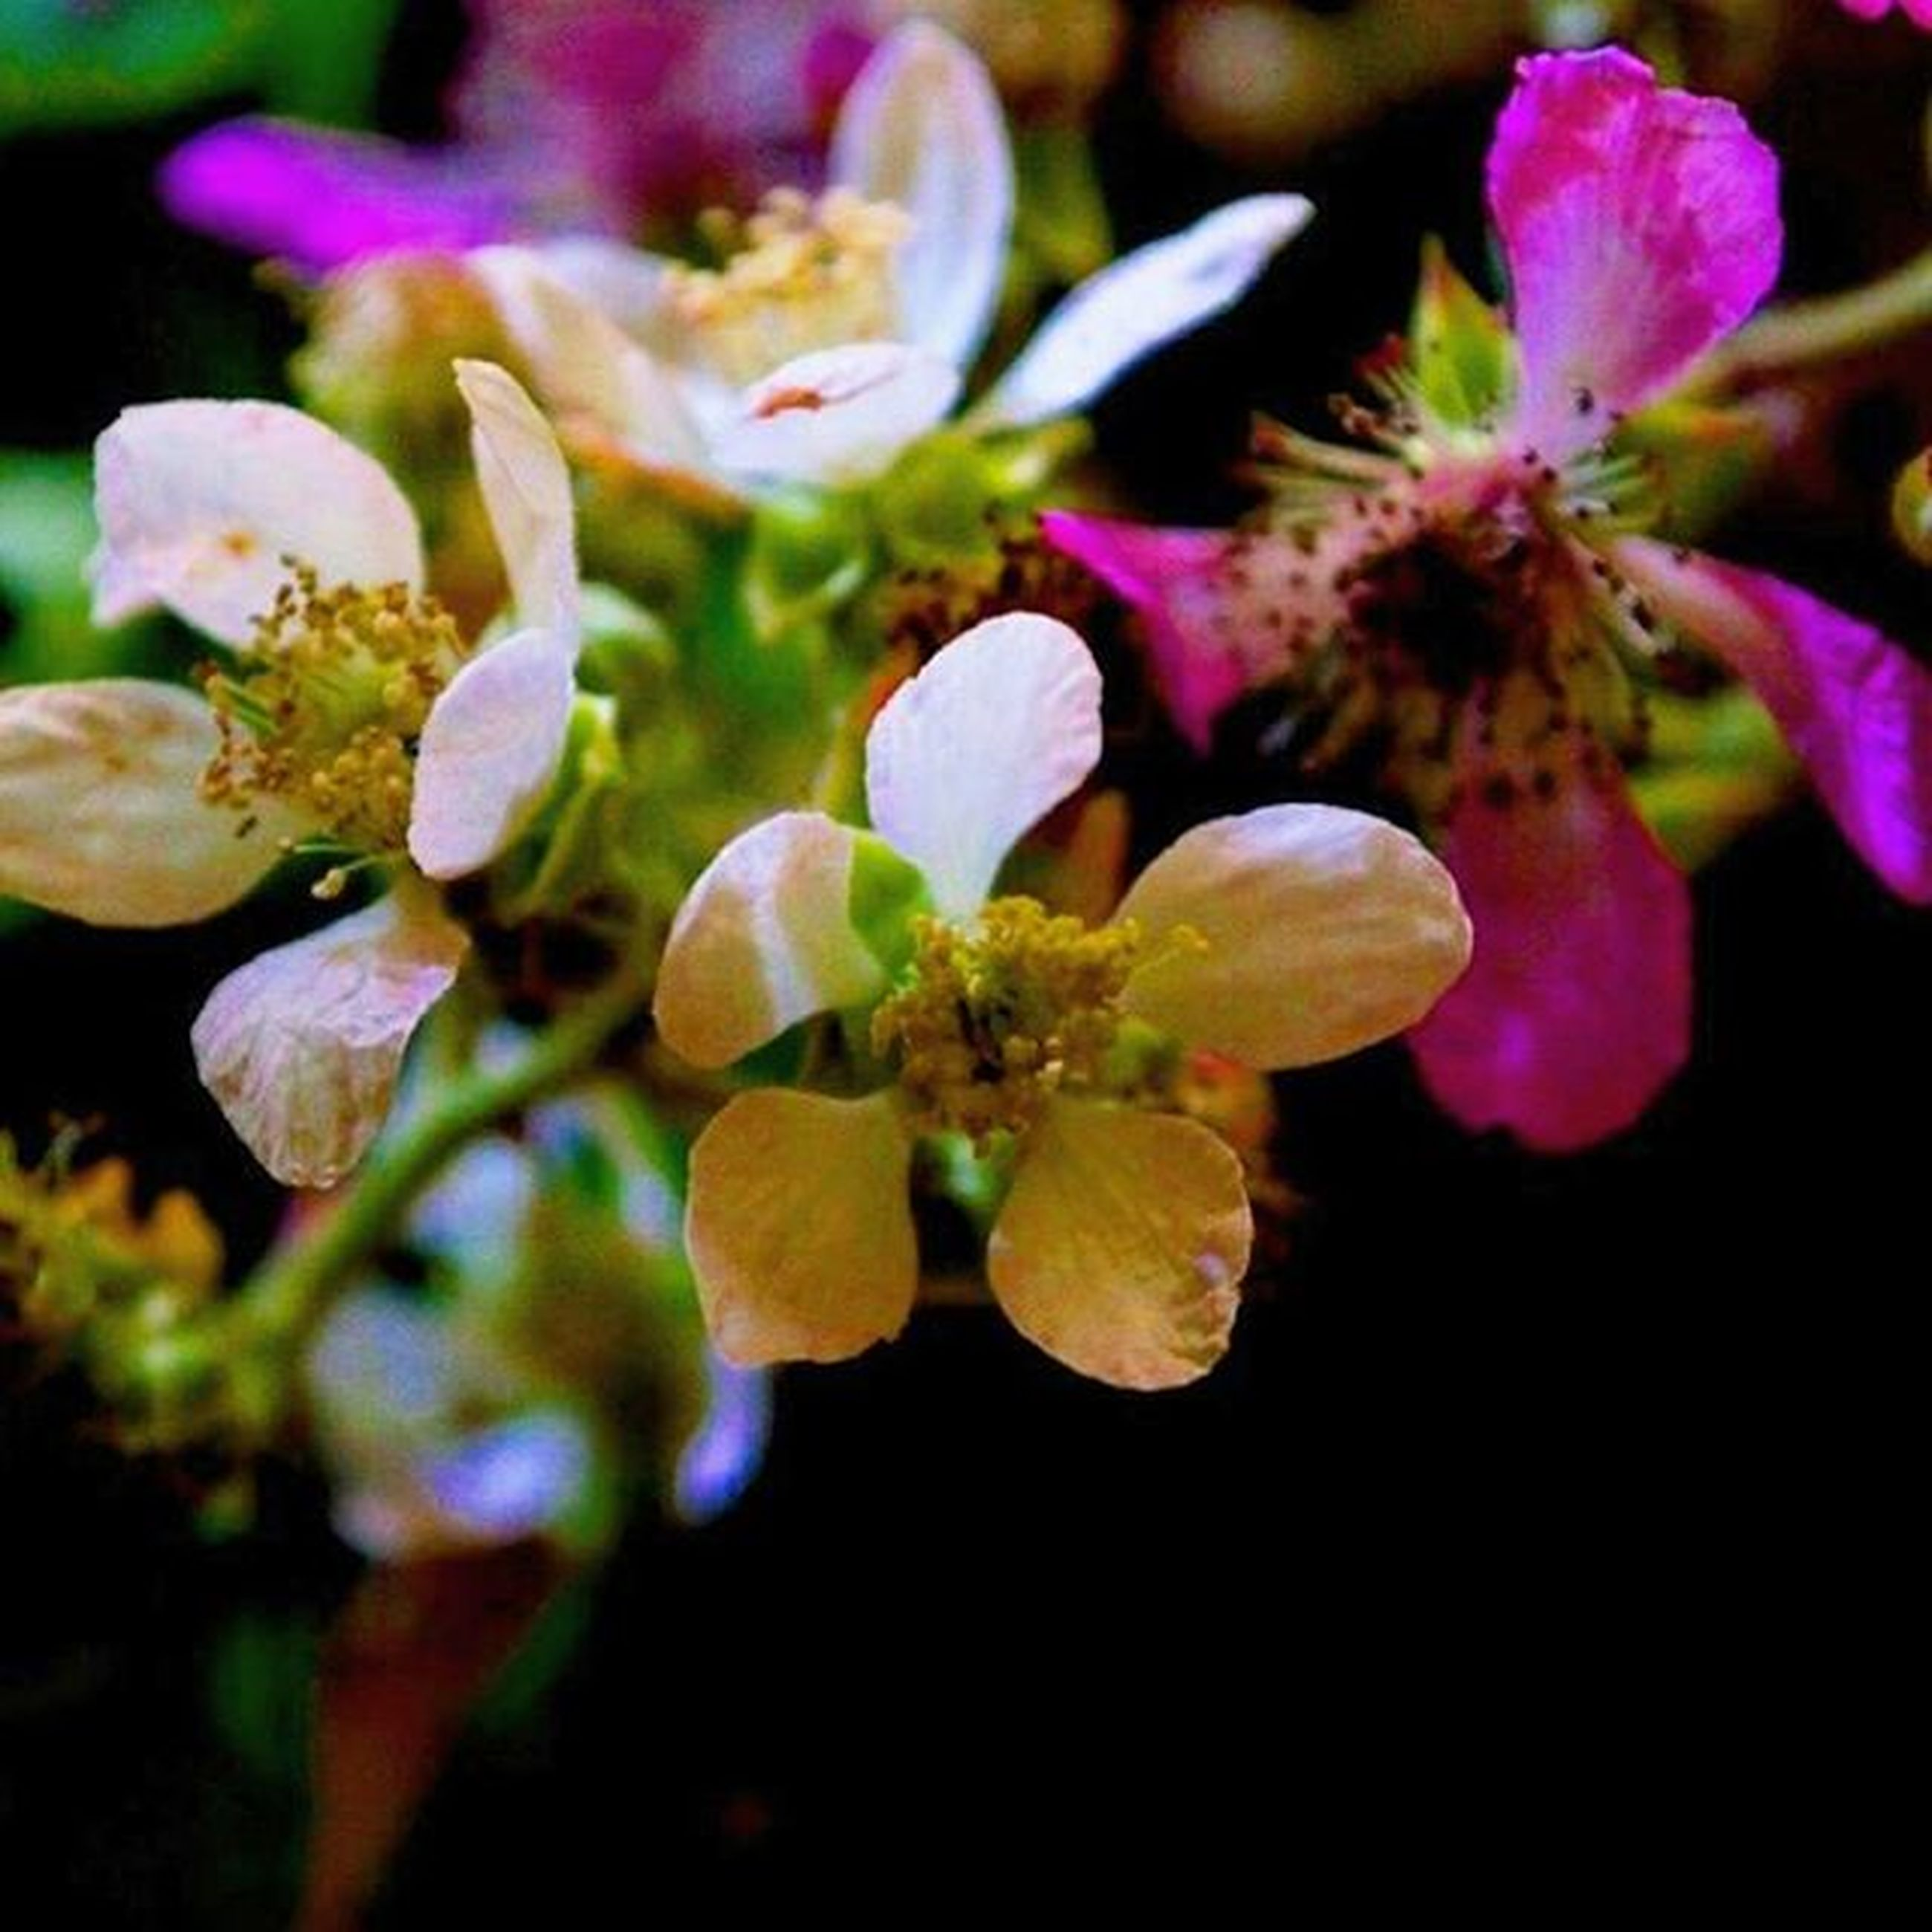 flower, freshness, petal, fragility, growth, beauty in nature, flower head, close-up, nature, focus on foreground, purple, plant, blooming, bud, in bloom, blossom, stem, selective focus, stamen, botany